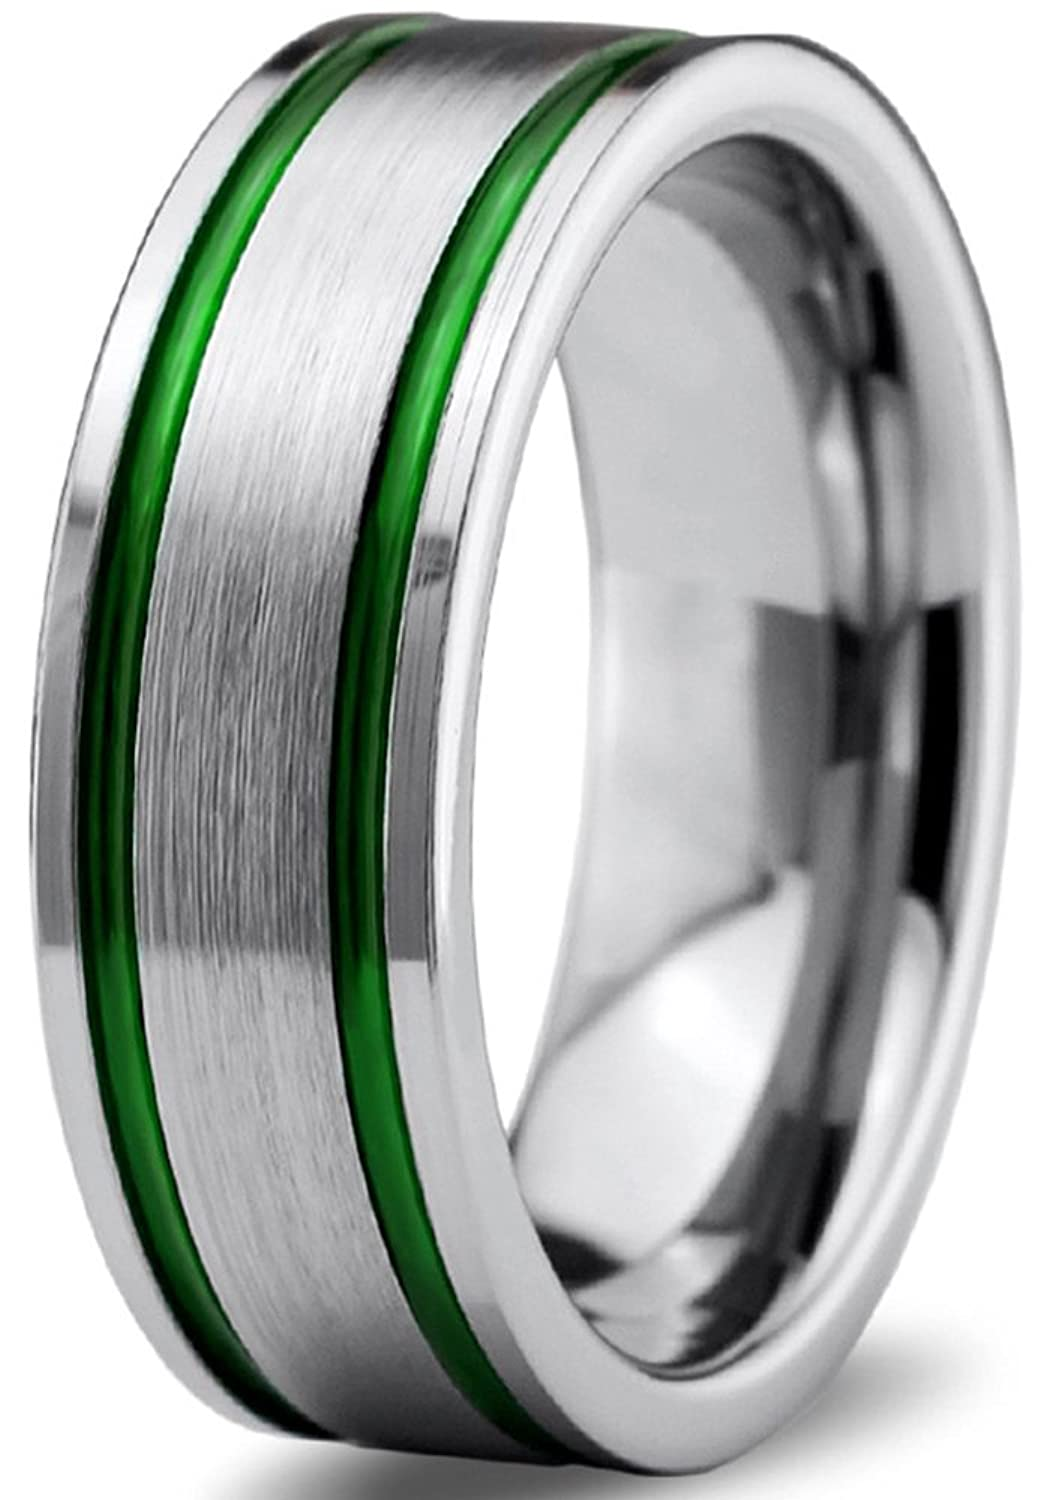 Tungsten Wedding Band Ring 8mm for Men Women Green Grey Flat Pipe Cut Brushed Polished